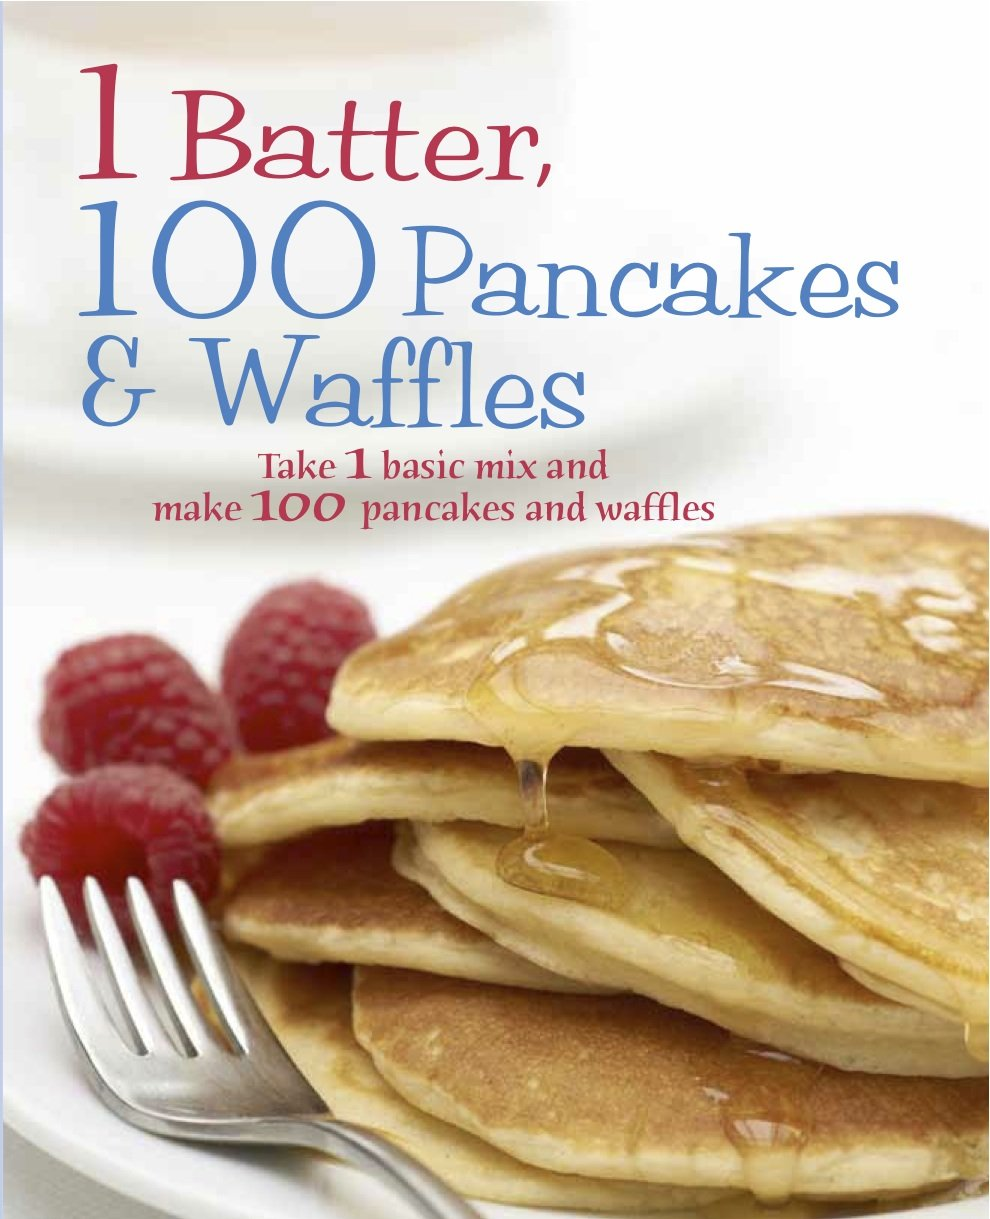 Download 1 Batter = 100 Pancakes and Waffles (Love Food) ebook